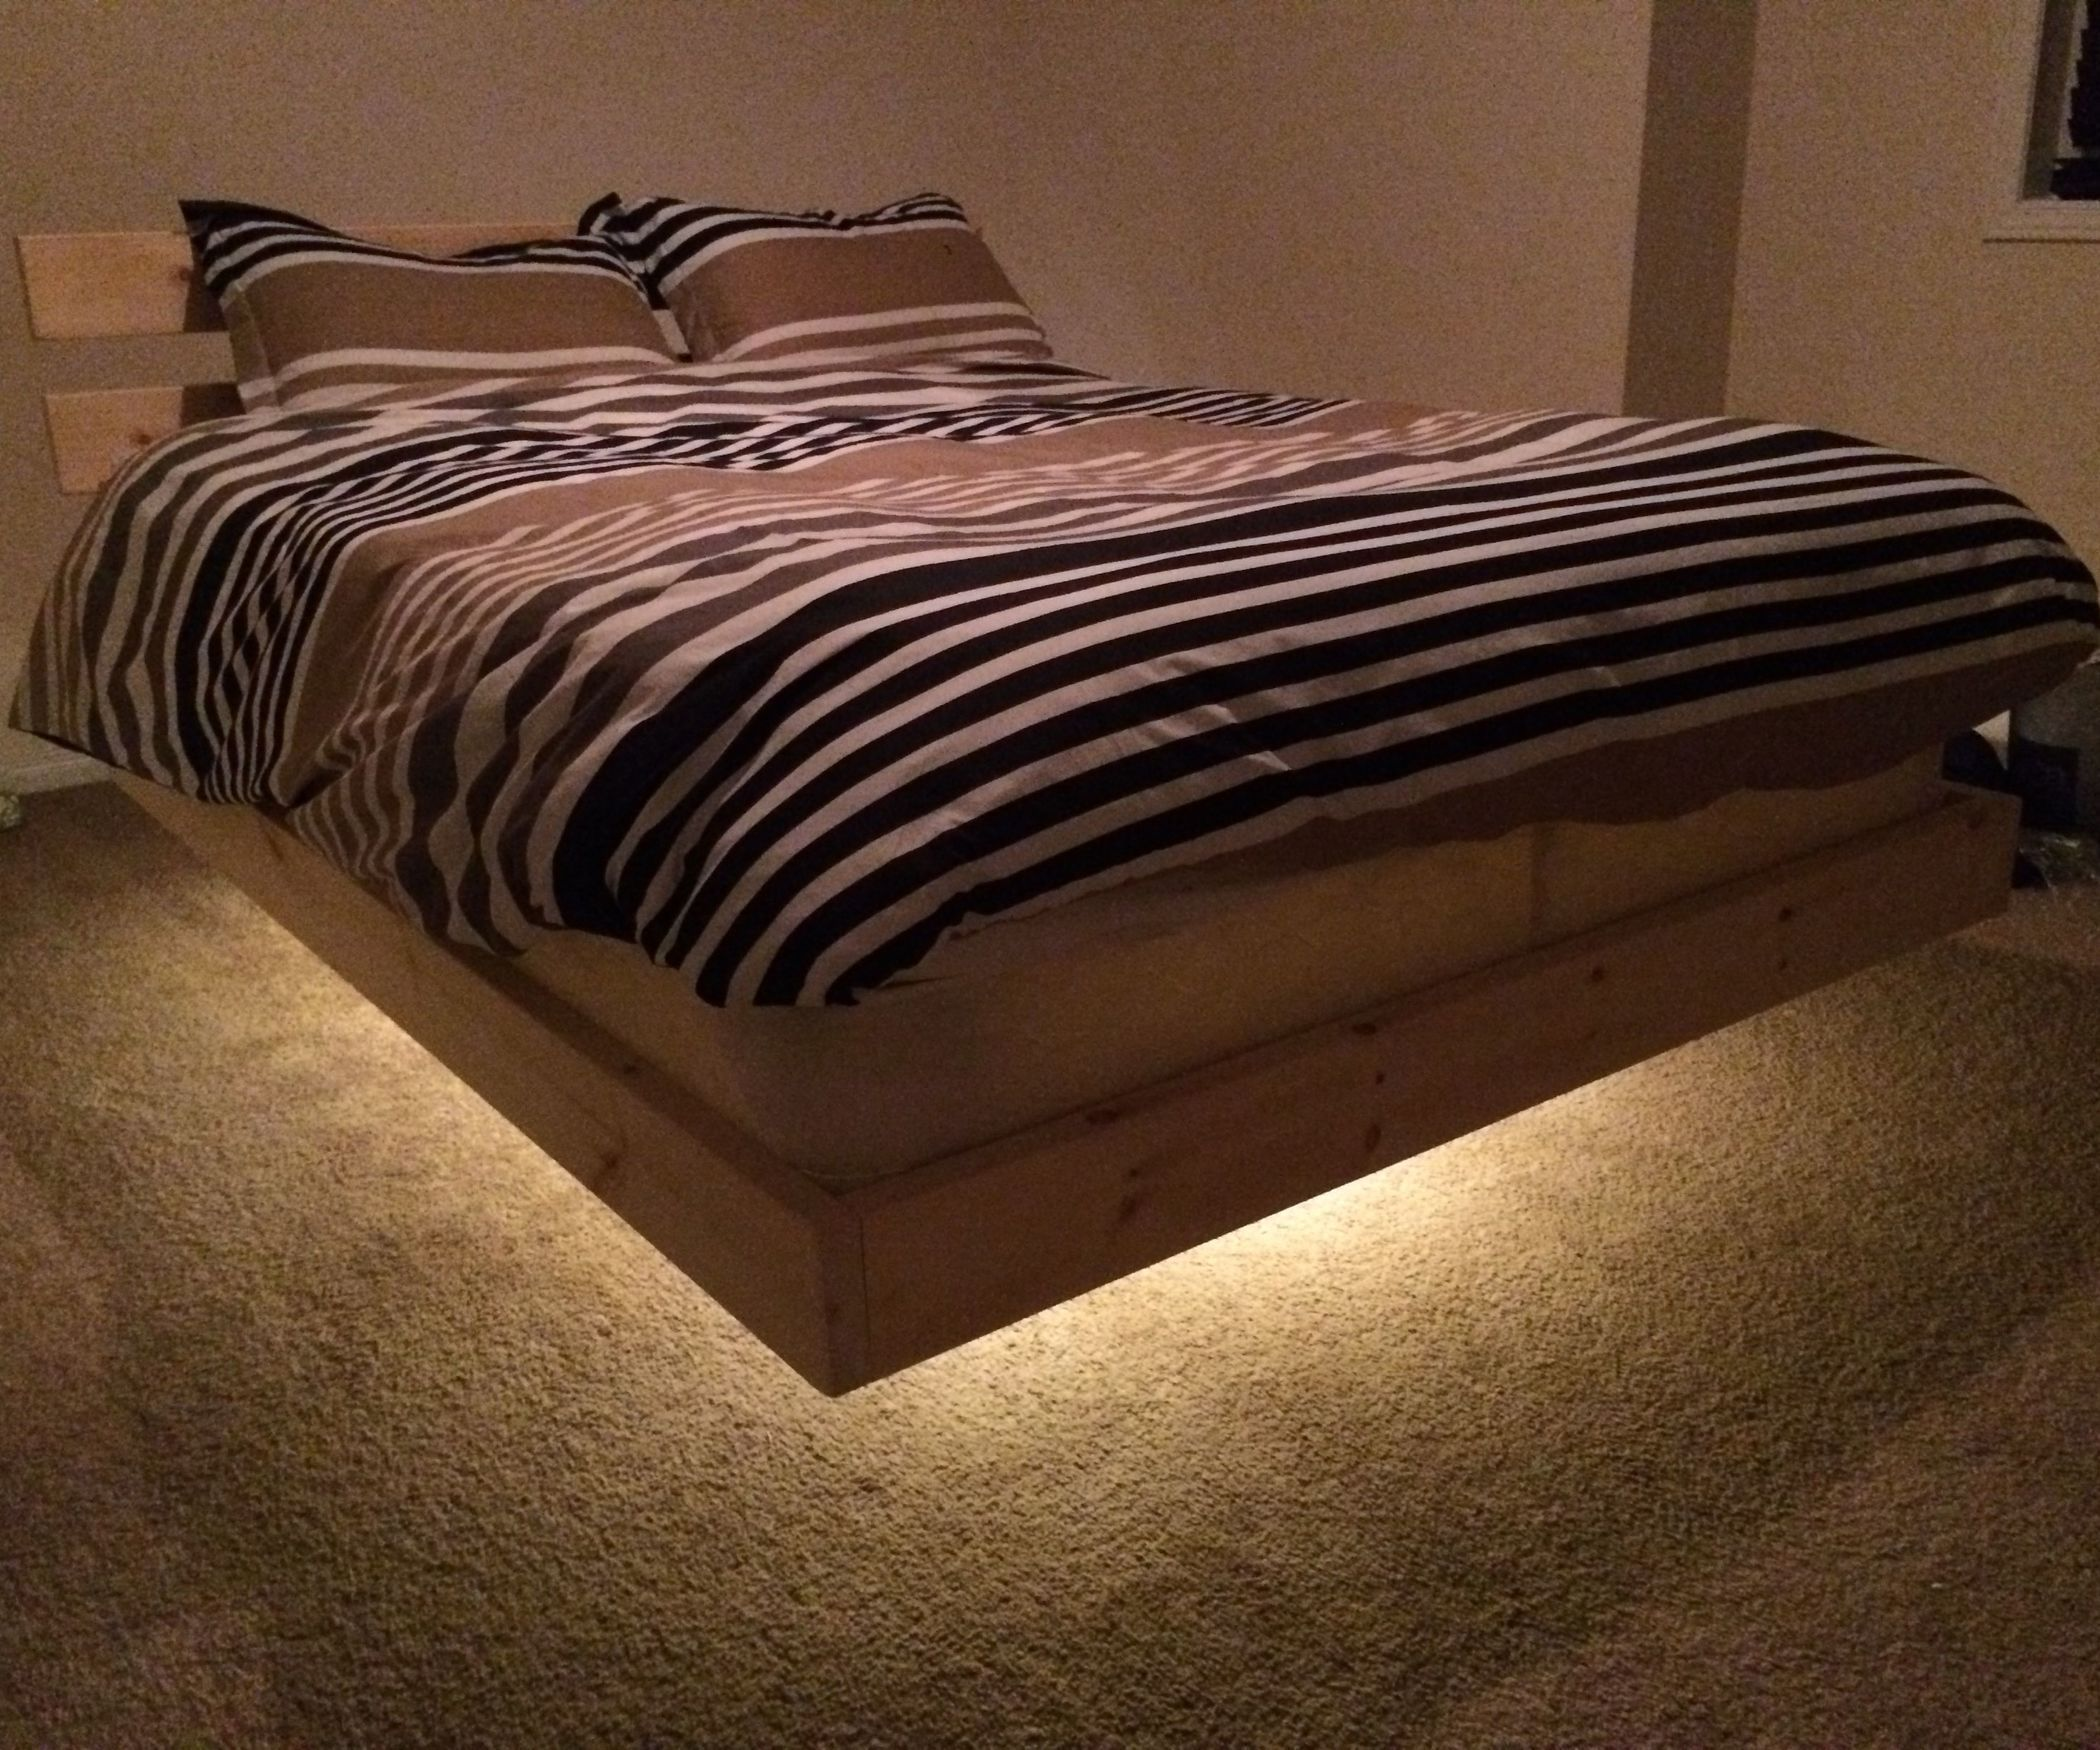 20 Amazing Floating Bed Frame